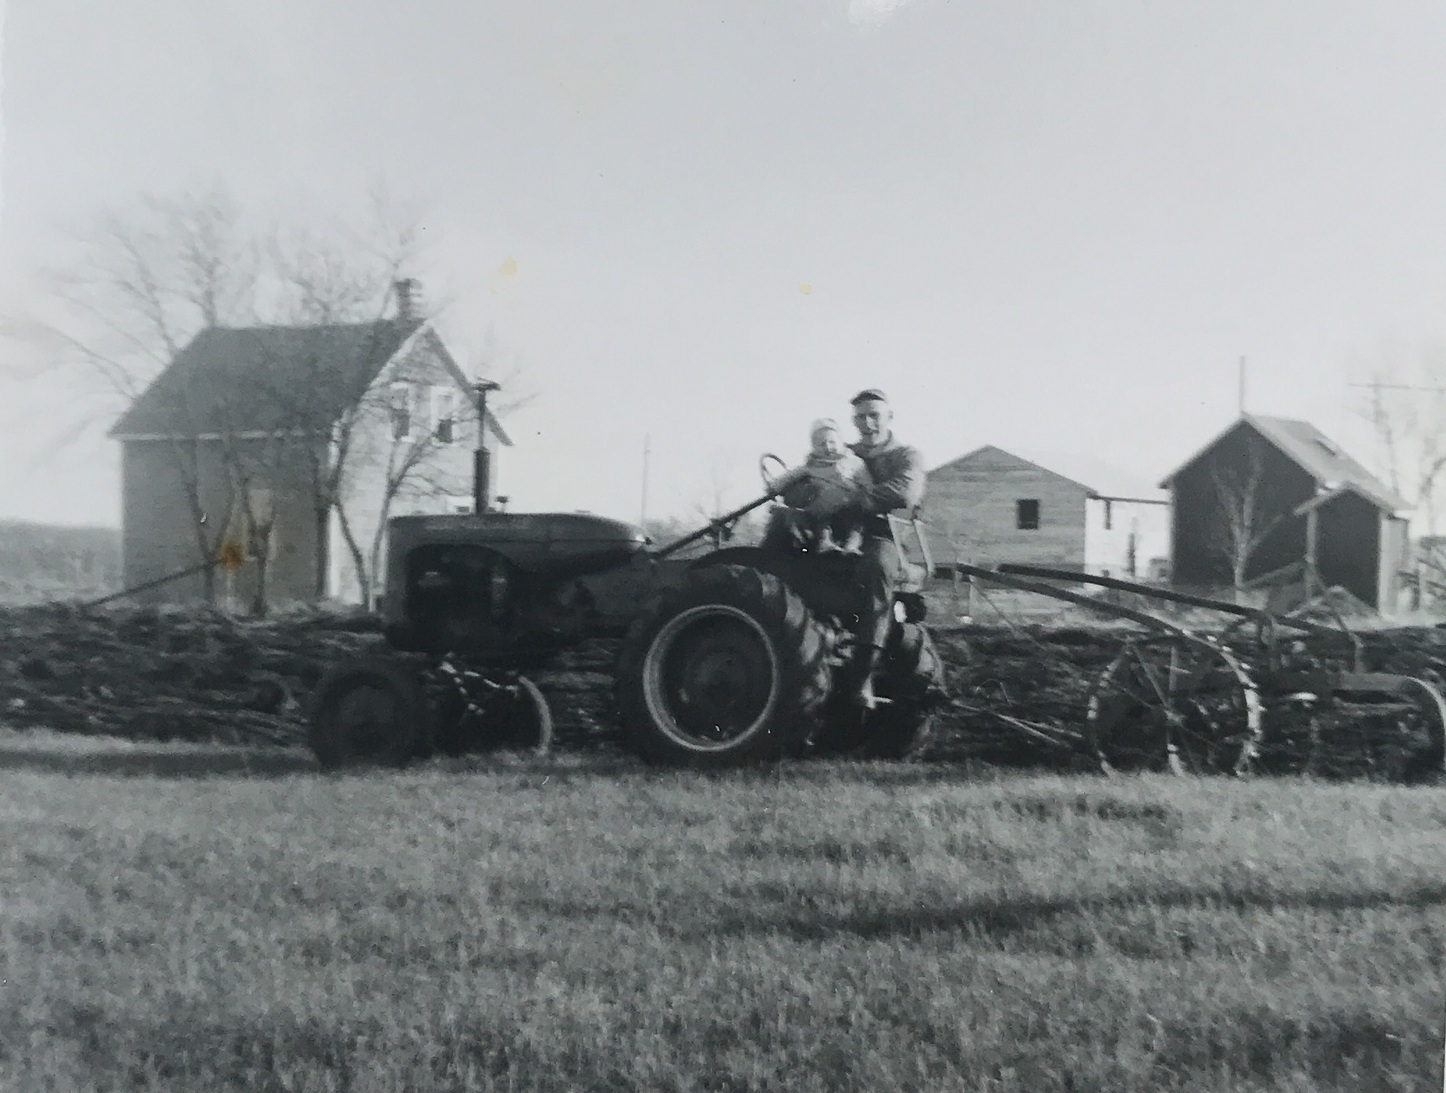 Louis with his daughter Diane on an Allis Chalmers B Tractor